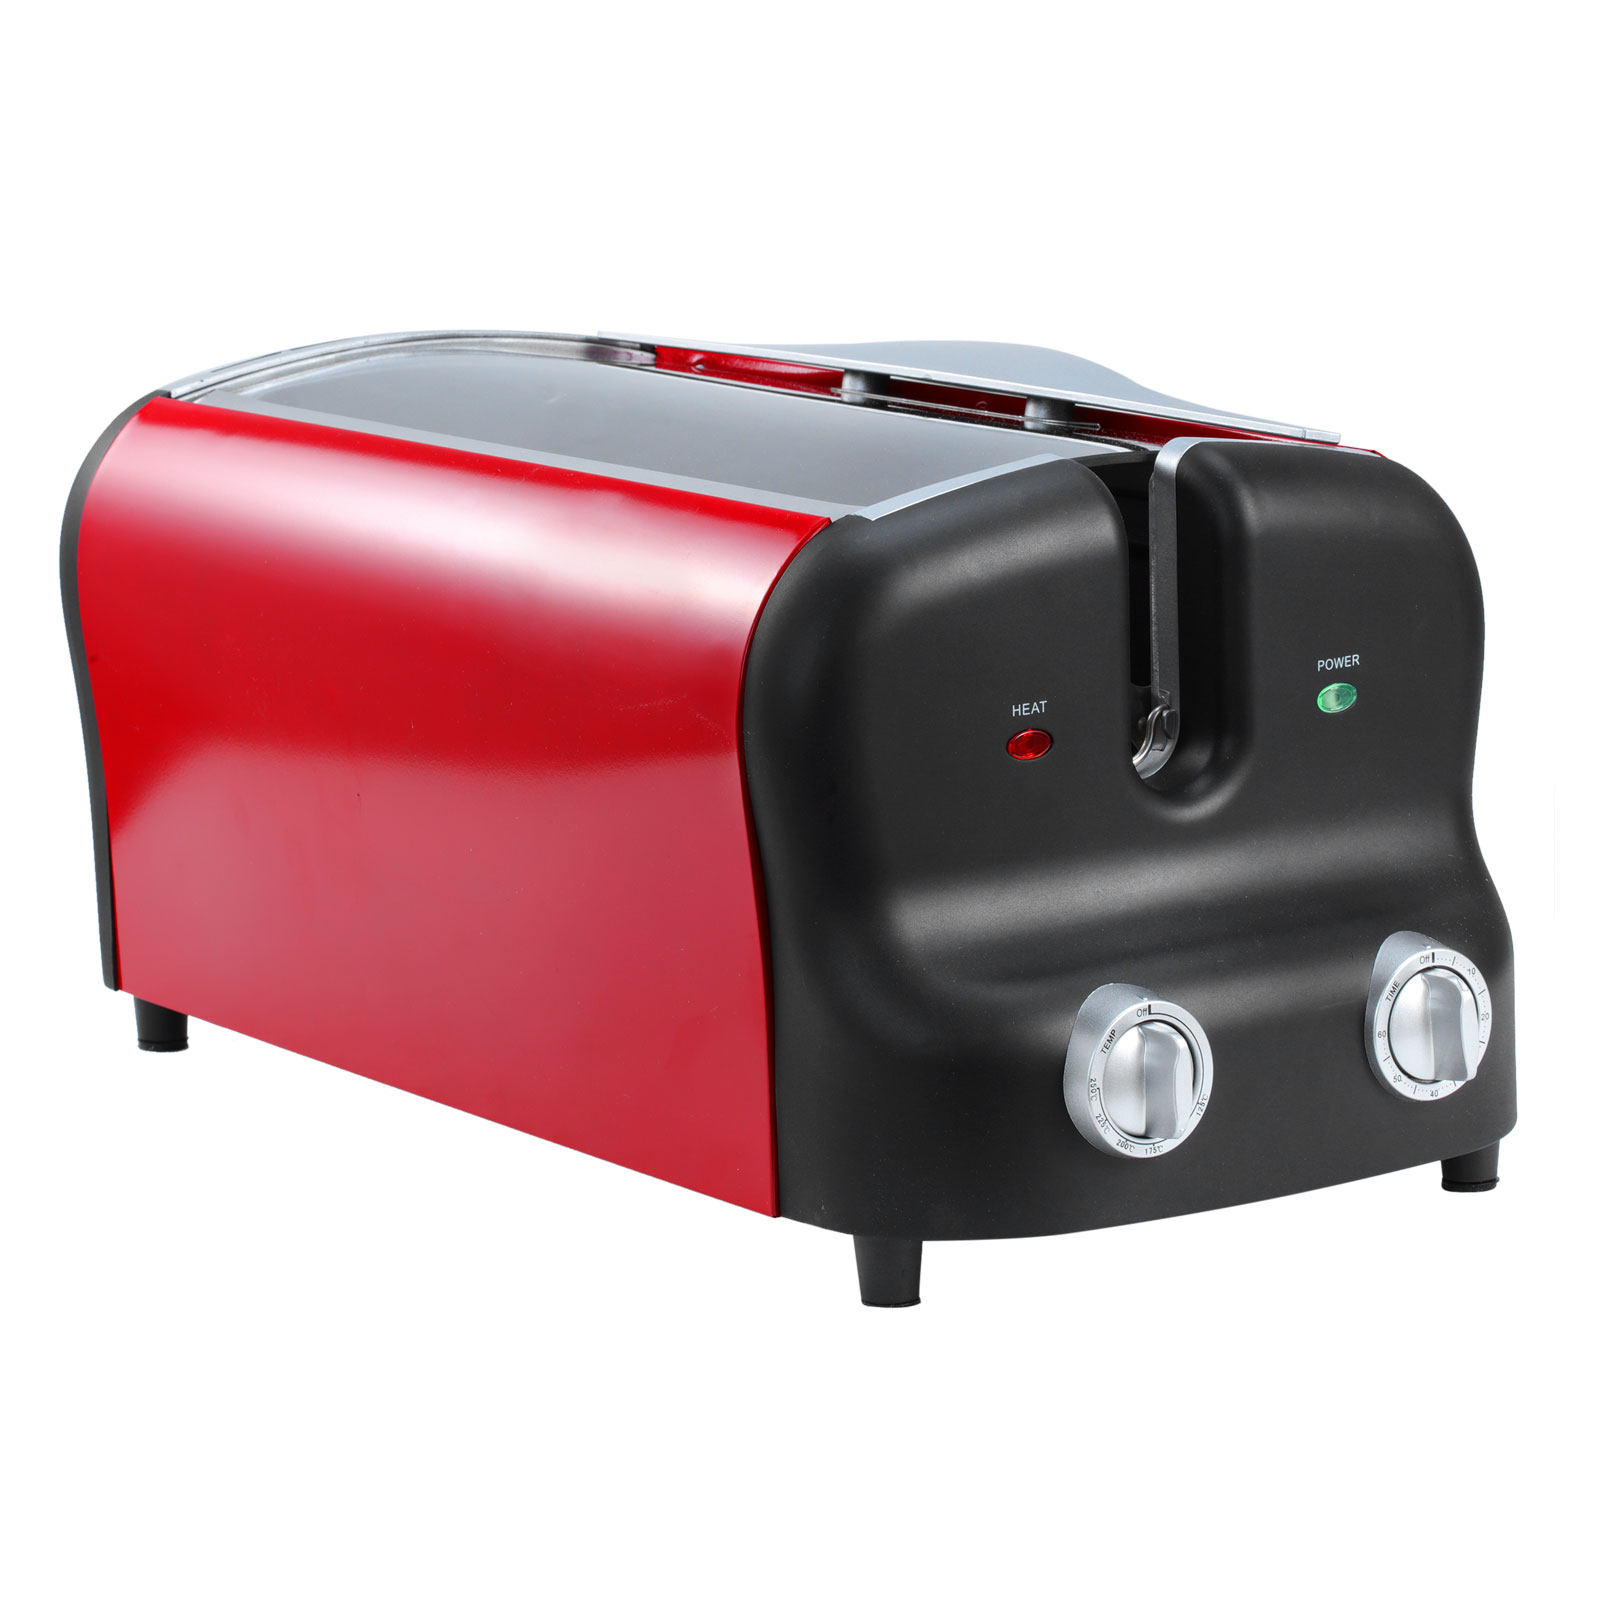 ... Multifunction Convection Rotisserie Air Fryer Oven Countertop Cooker